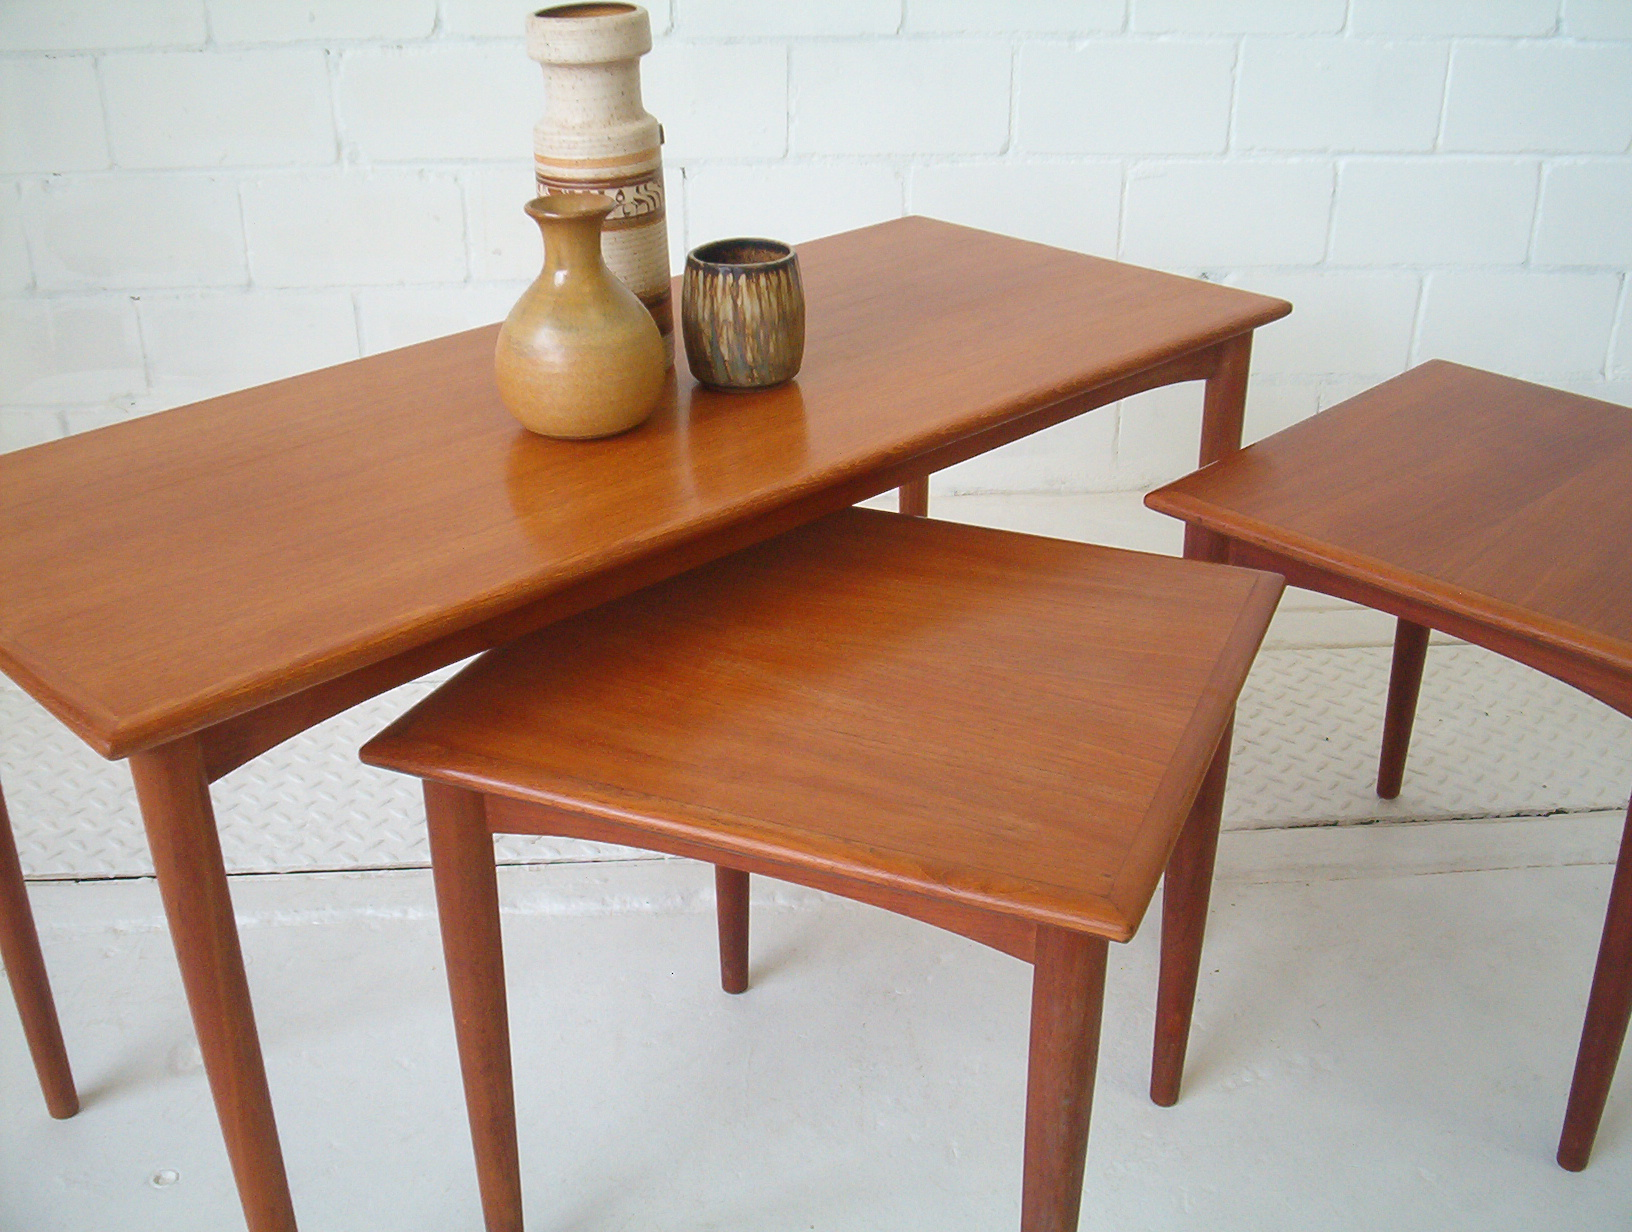 Parker Furniture Teak Coffee Table 2 Side Tables Vintage Danish